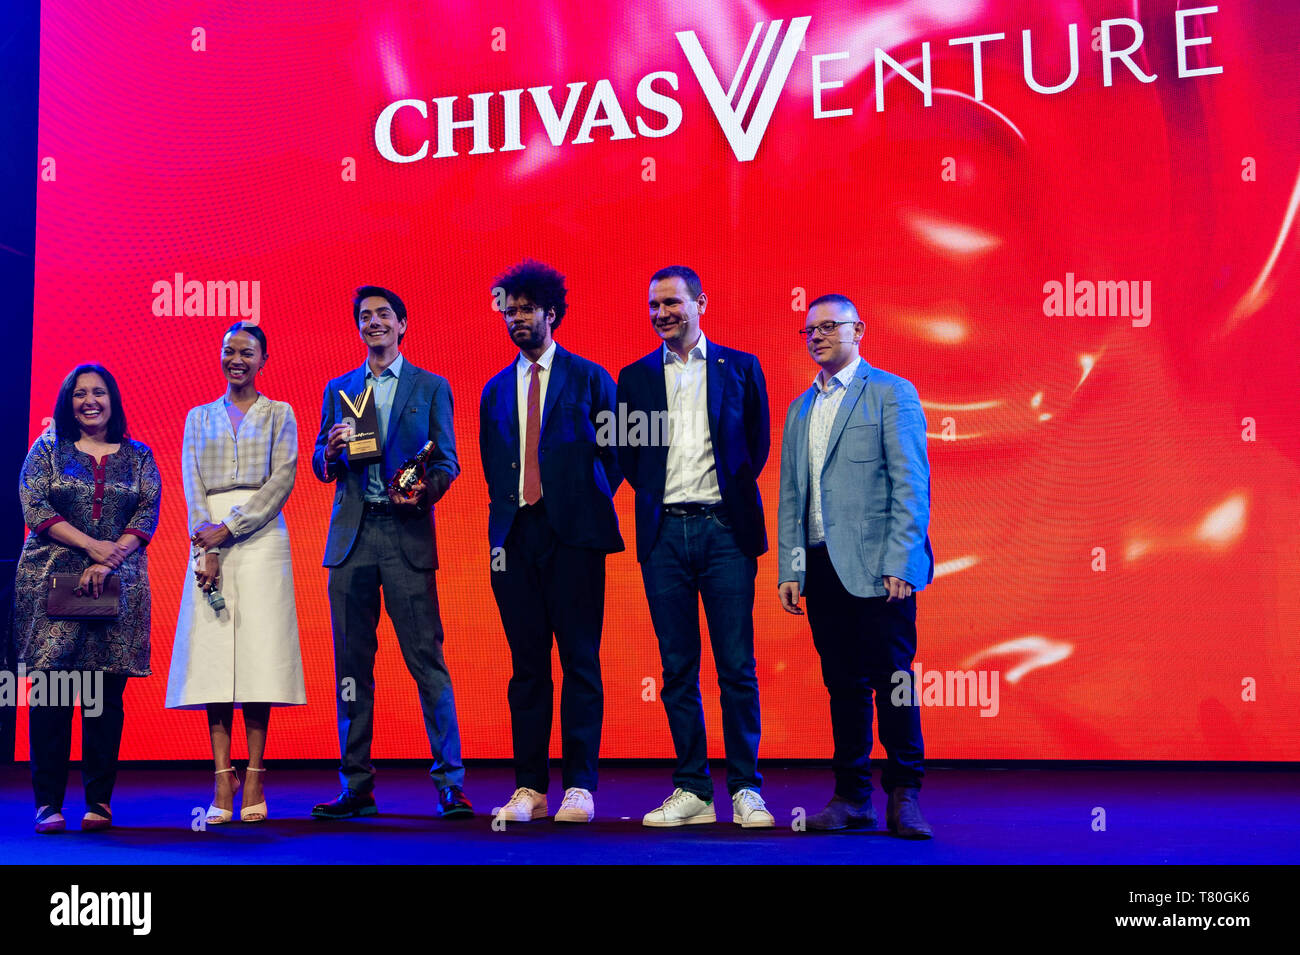 Amsterdam, North Holland, Netherlands. 9th May, 2019. (L to R) Chivas Venture judge and Executive Director of the Beeck Center for Social Impact and innovation Sonal Shah, Chivas Venture Judge Zoe Saldana, Chivas Venture Award Winner Javier Larragoiti of Xilinat, BAFTA winning actor Richard Ayoade, Alexandre Ricard chairman and CEO of Pernod Ricard and Chivas Venture judge and Founder of Change Please Cemal Ezel seen posing for a group photo at the Chivas Venture Global Final at TNW Conference. The 14th edition of the TNW conference was inaugurated in Amsterdam at the NDSM, a creative hub for - Stock Image